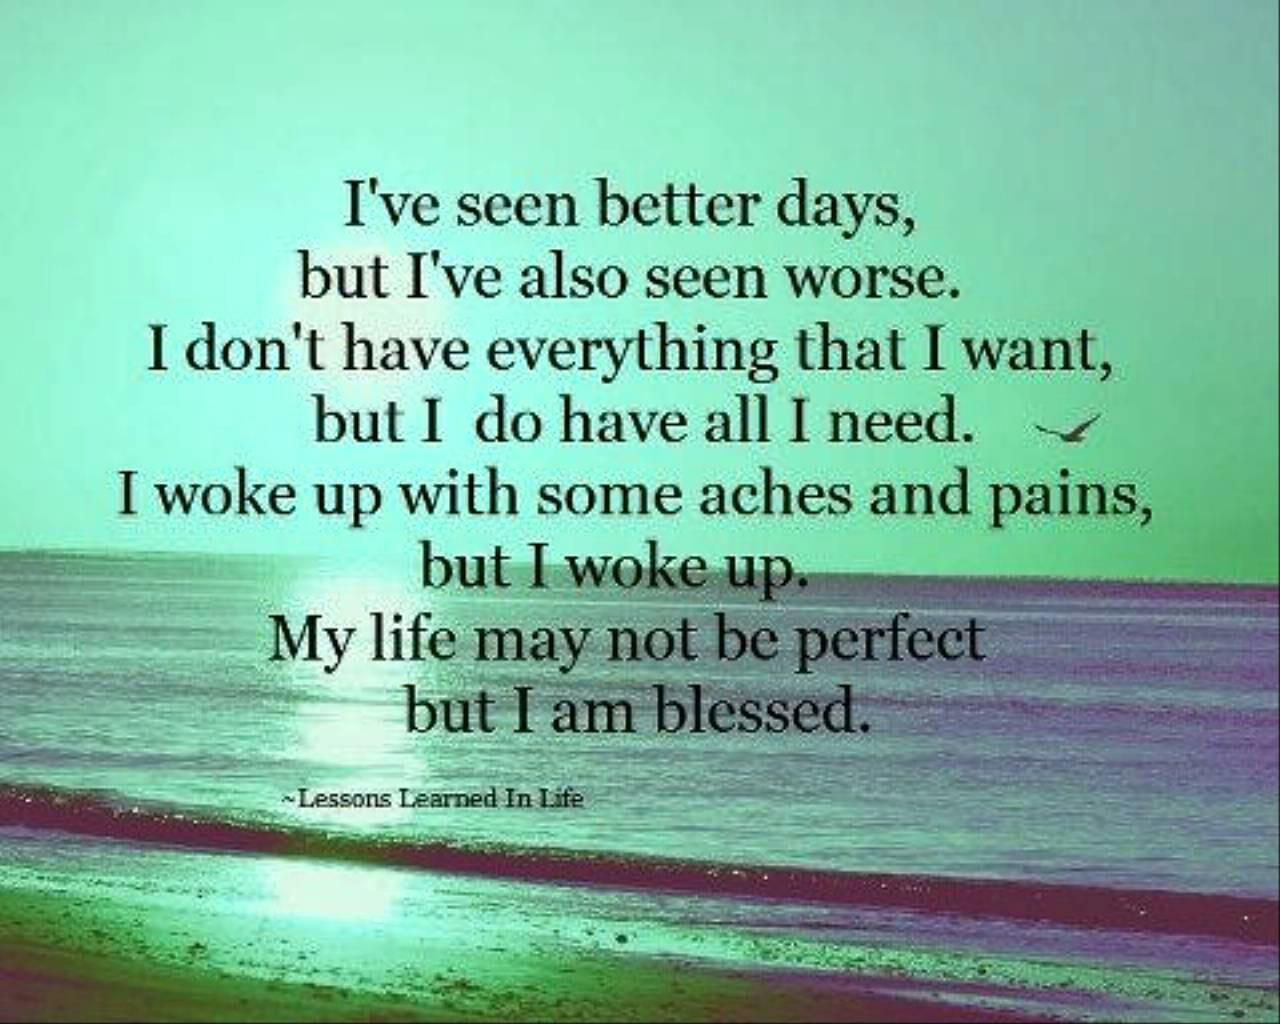 i am blessed quotes - photo #6